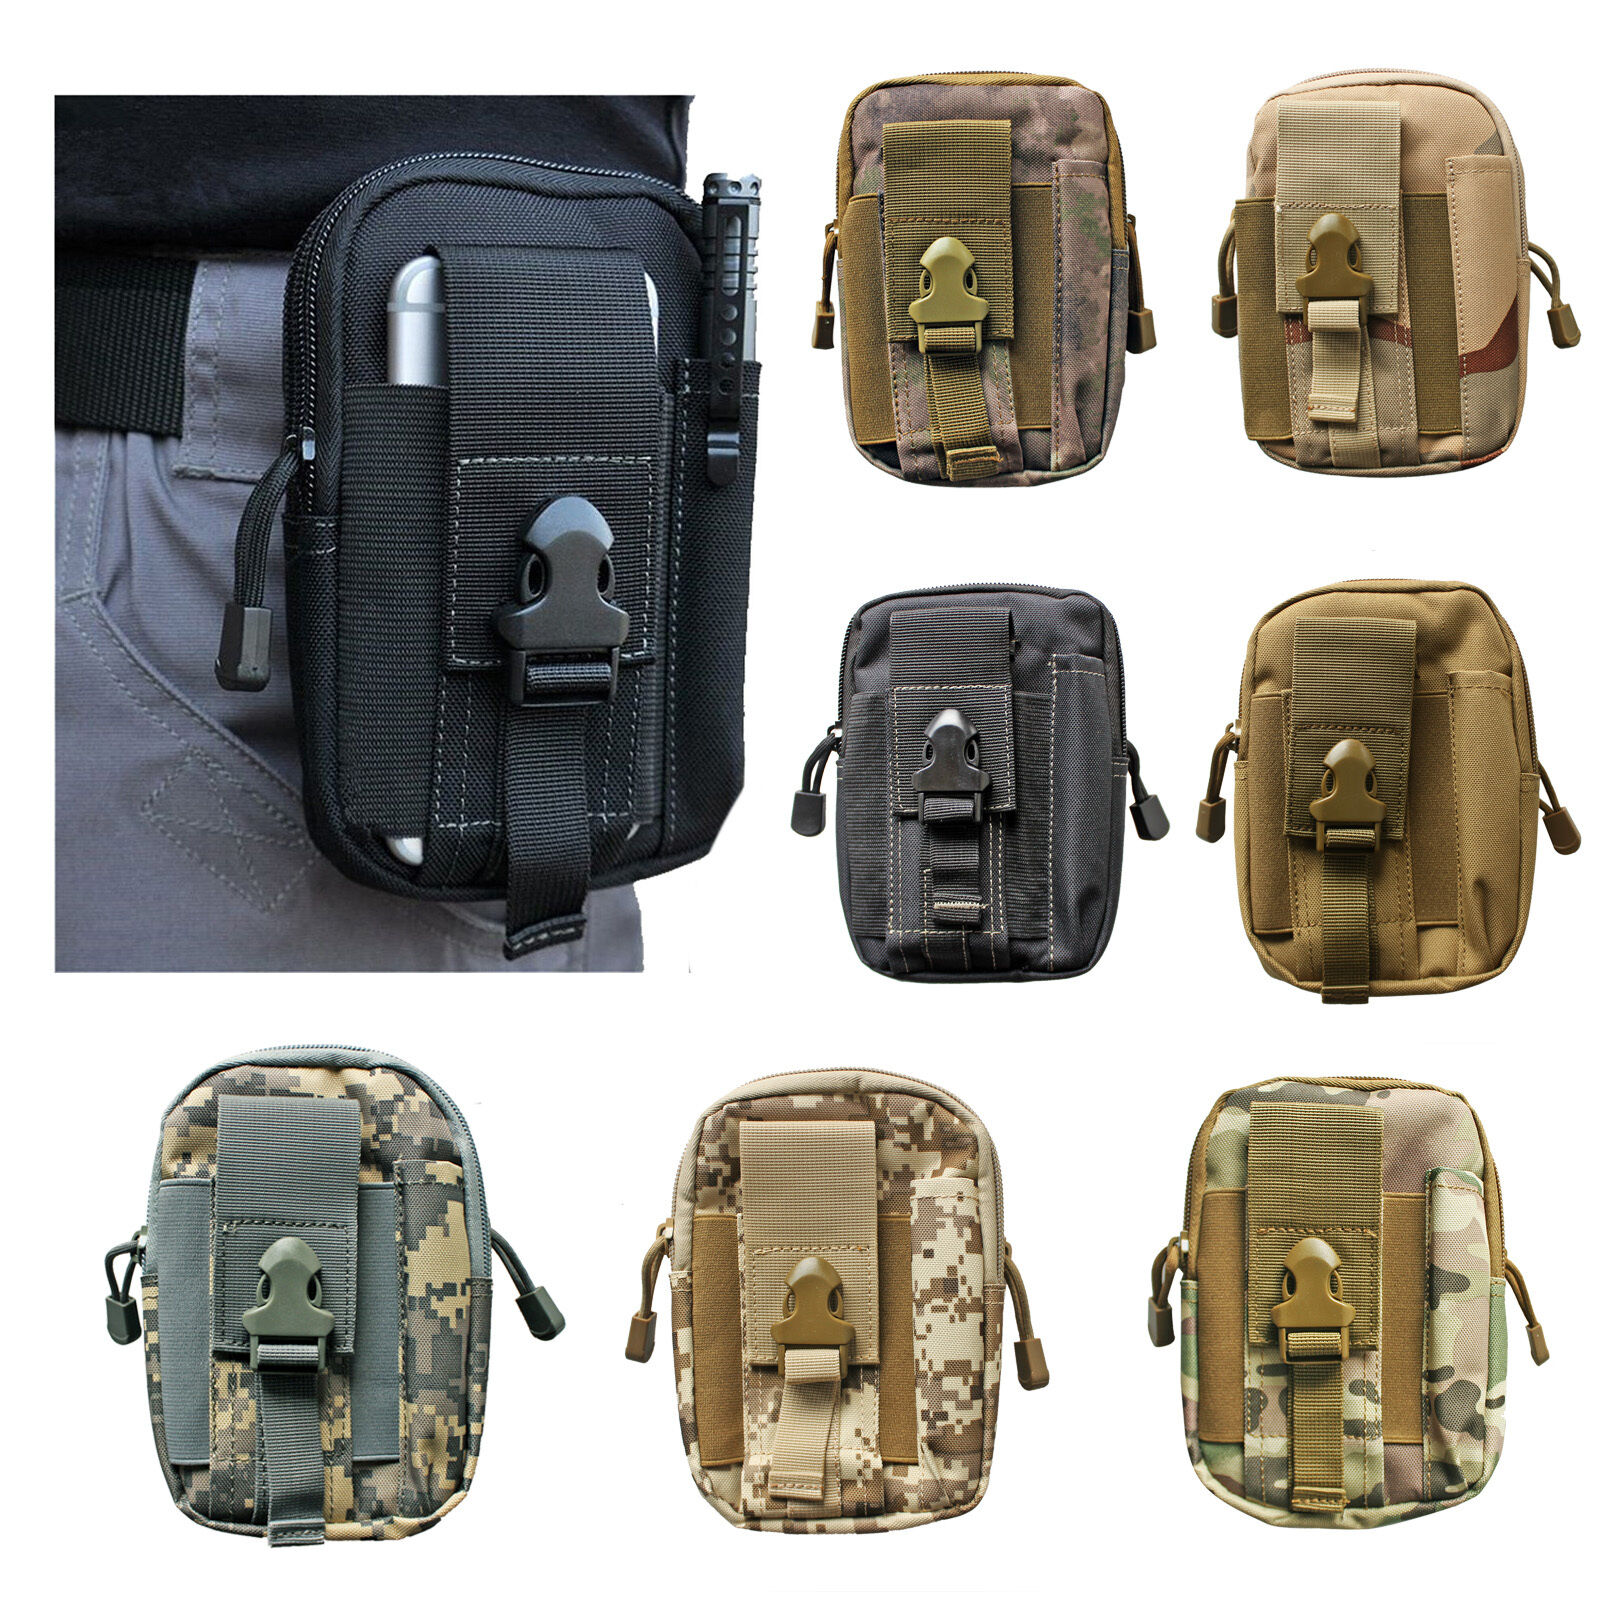 Waterproof Pouch Handbags Waist Belt Pack Military Tactical School Bag Wallet